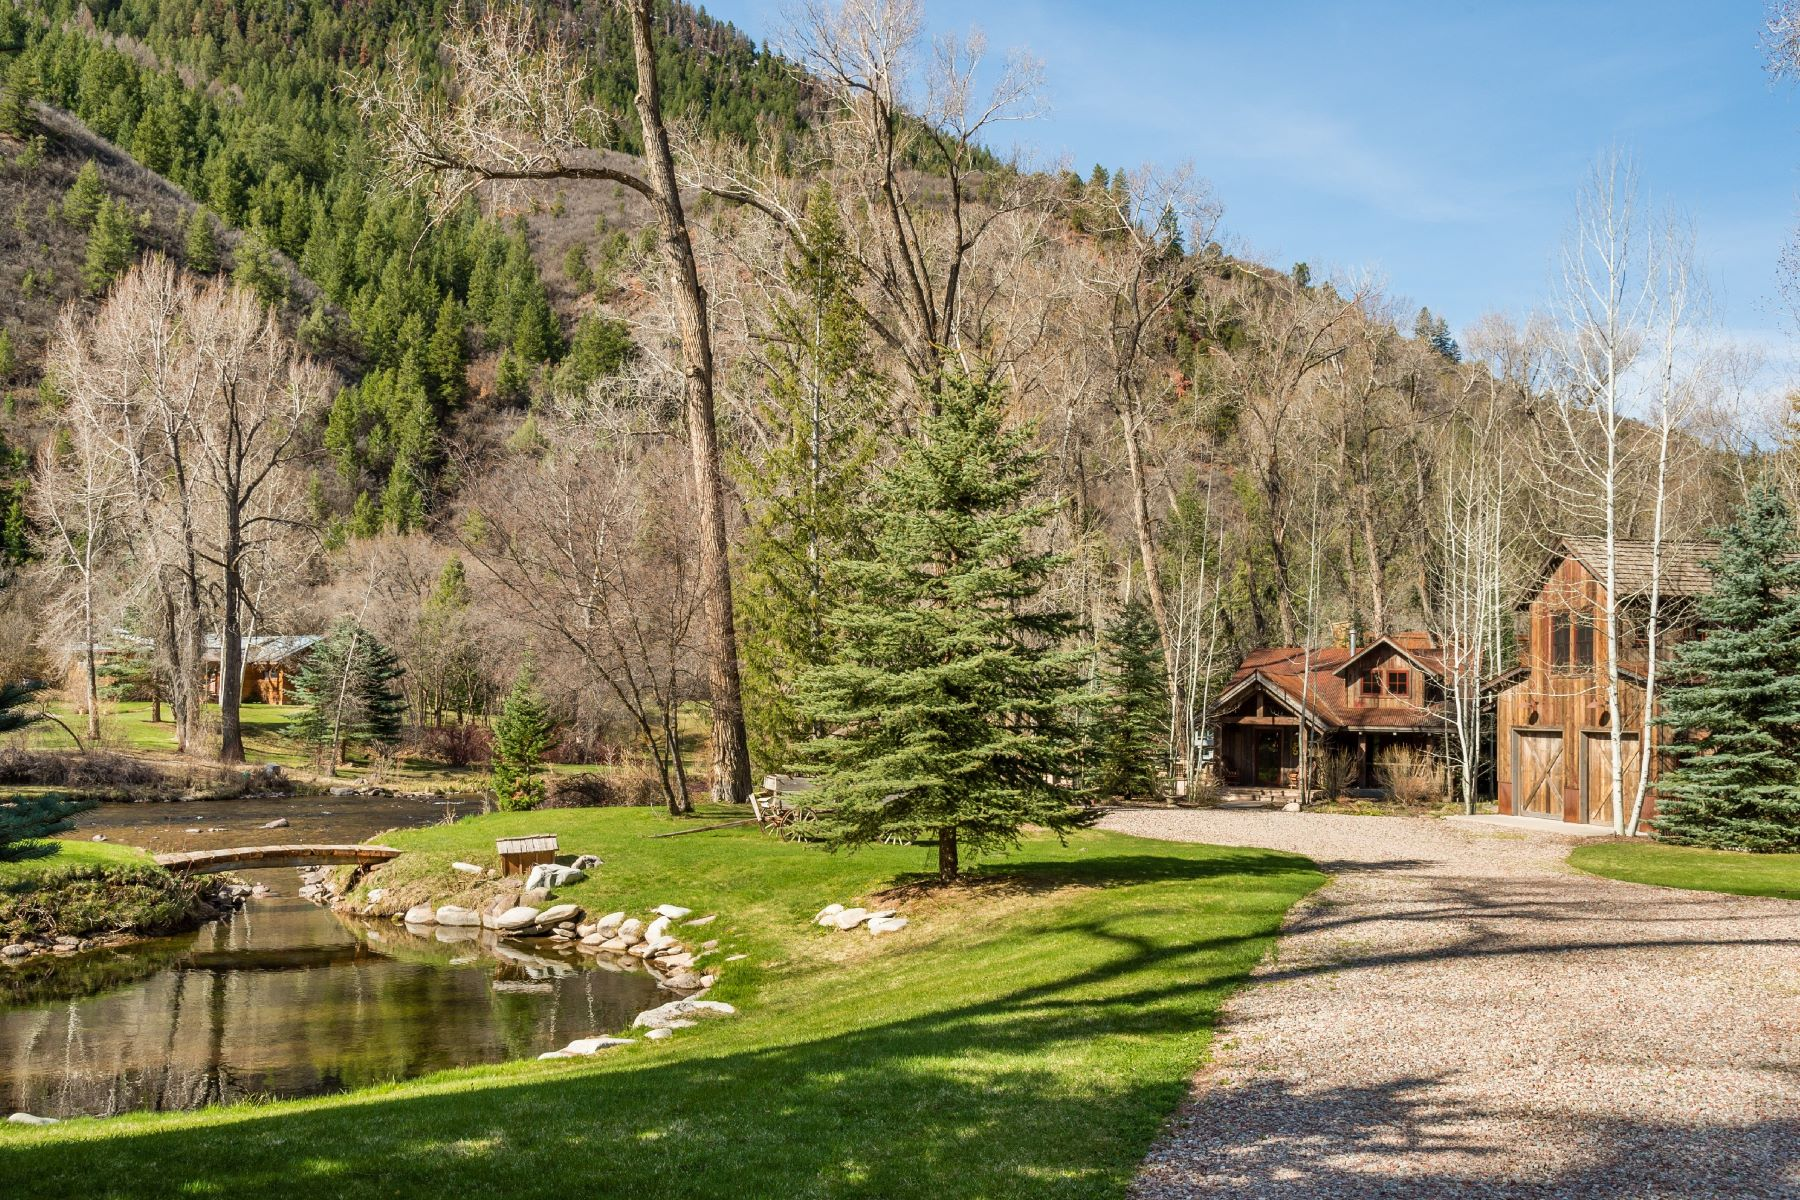 Single Family Homes for Sale at Riverfront Property on the Frying Pan 23 Peachblow Road Basalt, Colorado 81621 United States